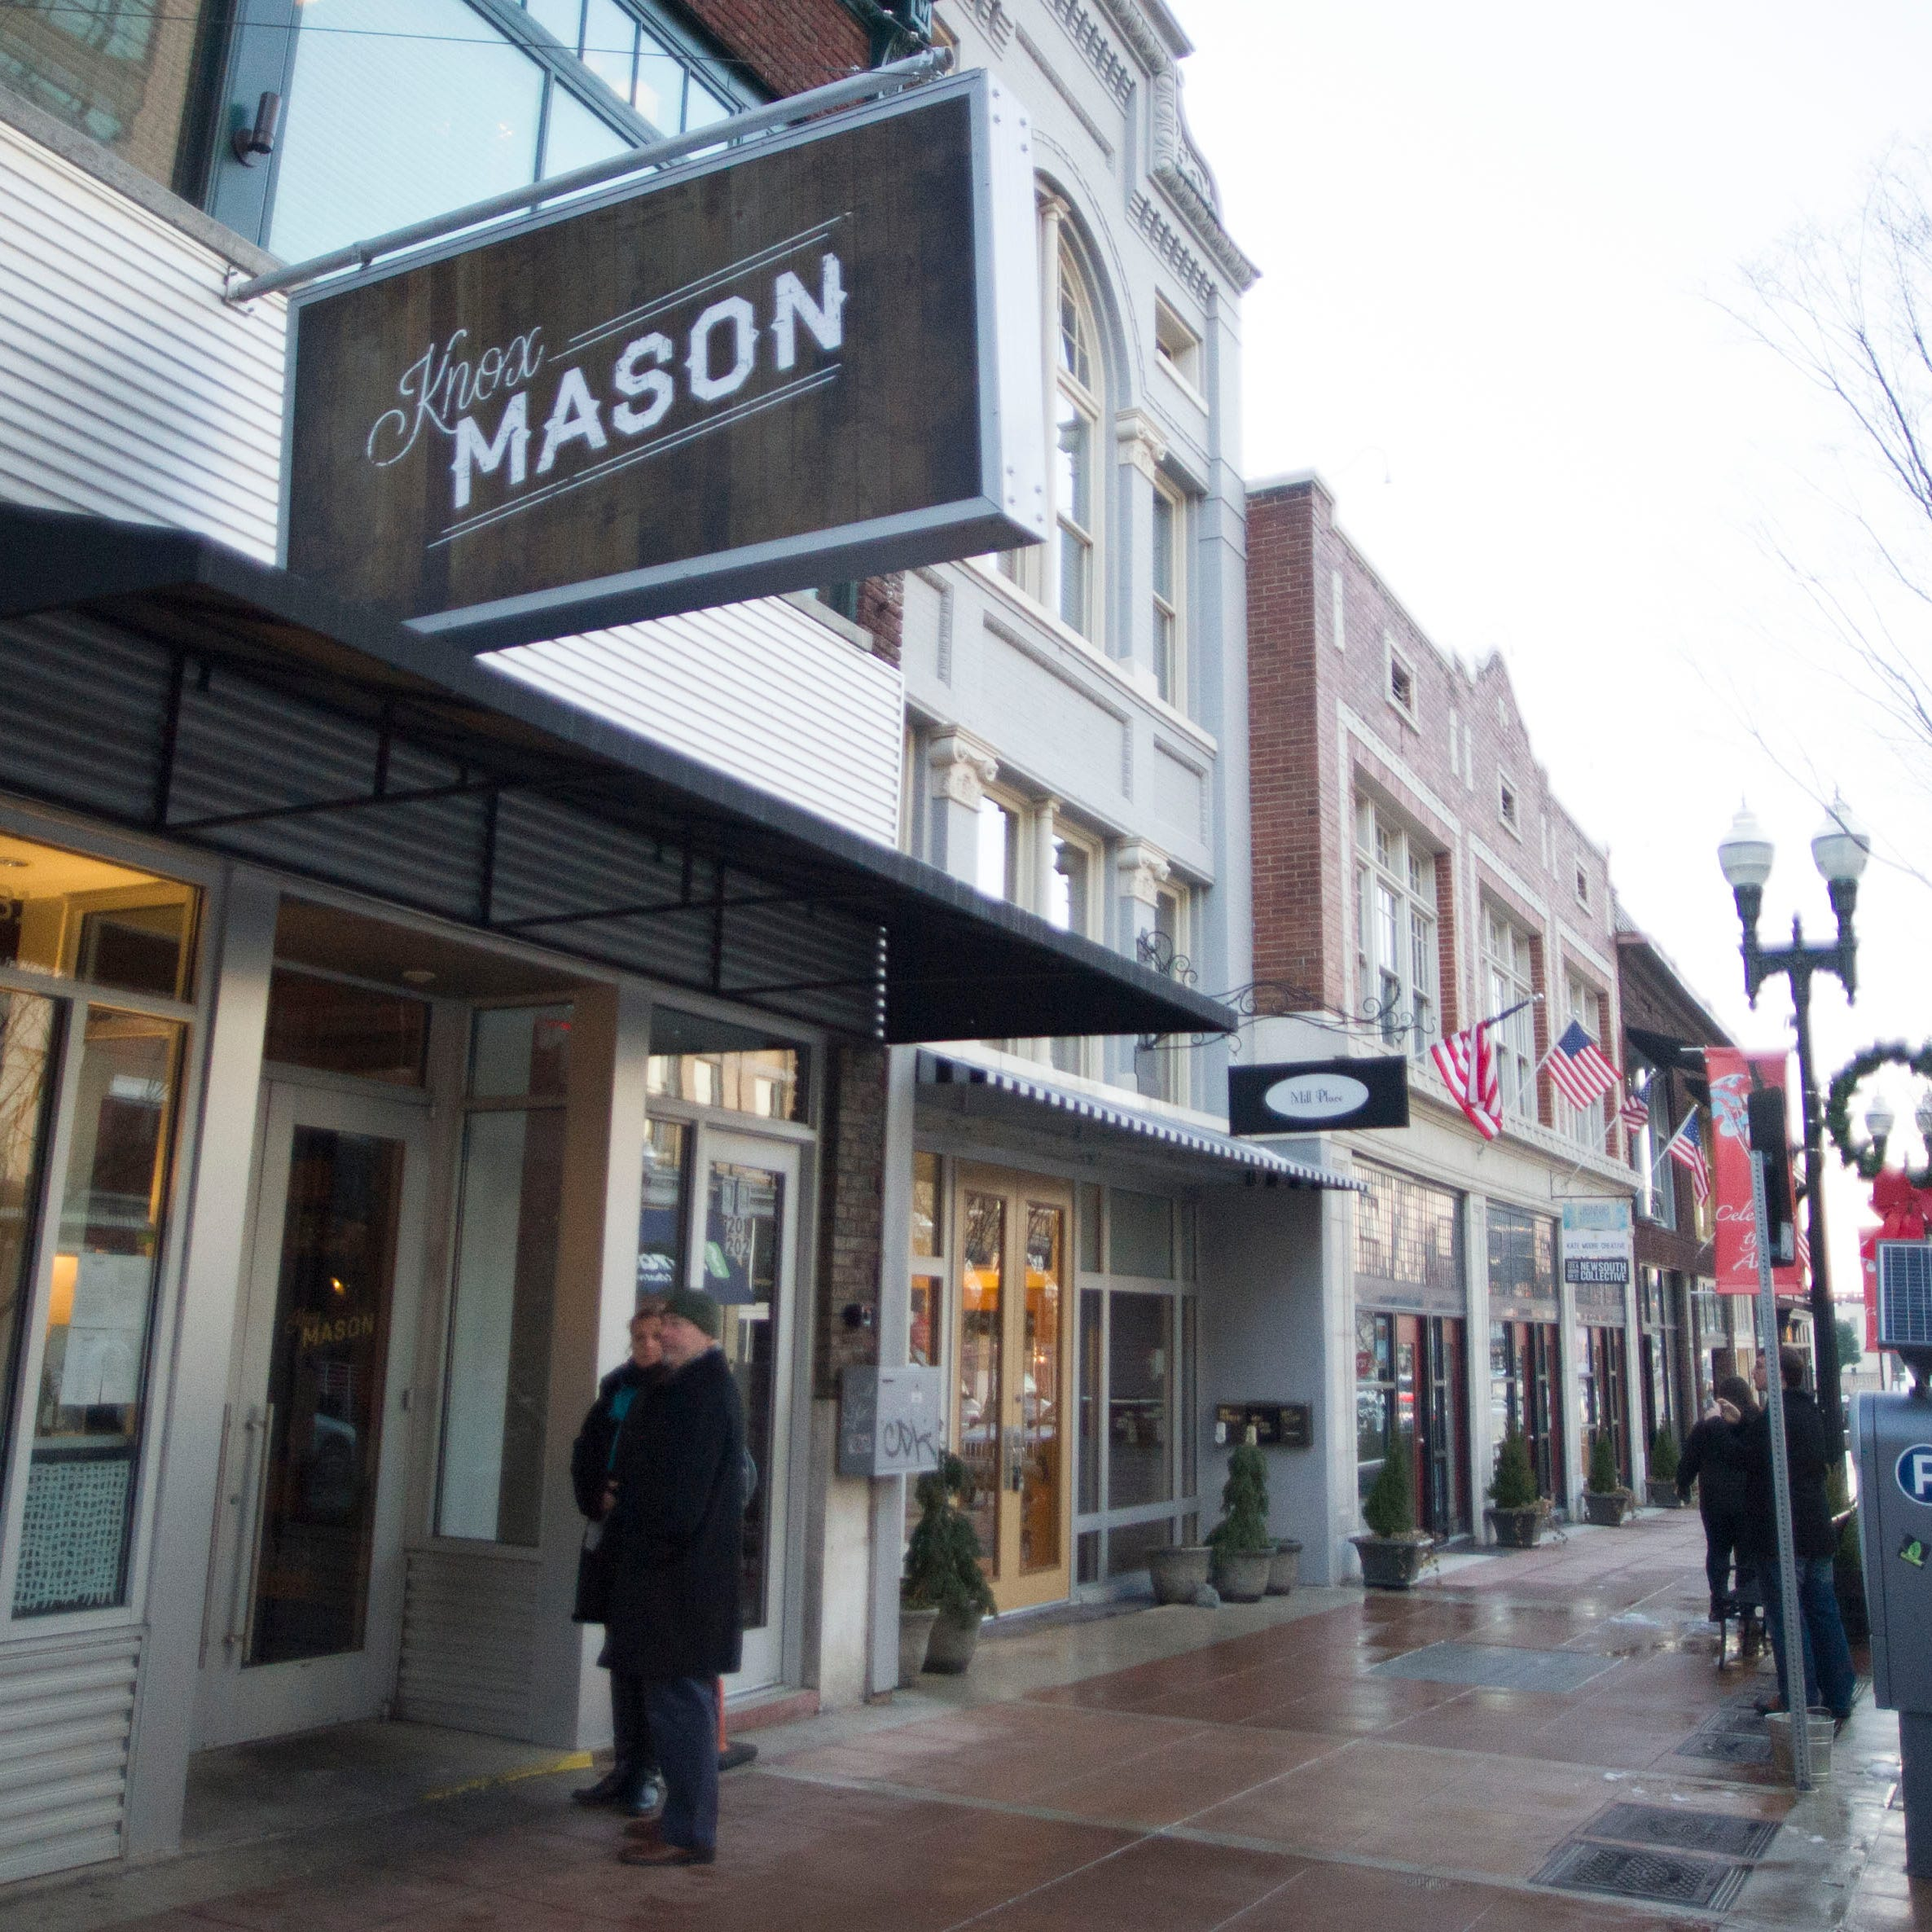 Knoxville dining: Knox Mason among area's restaurant openings, location shuffles